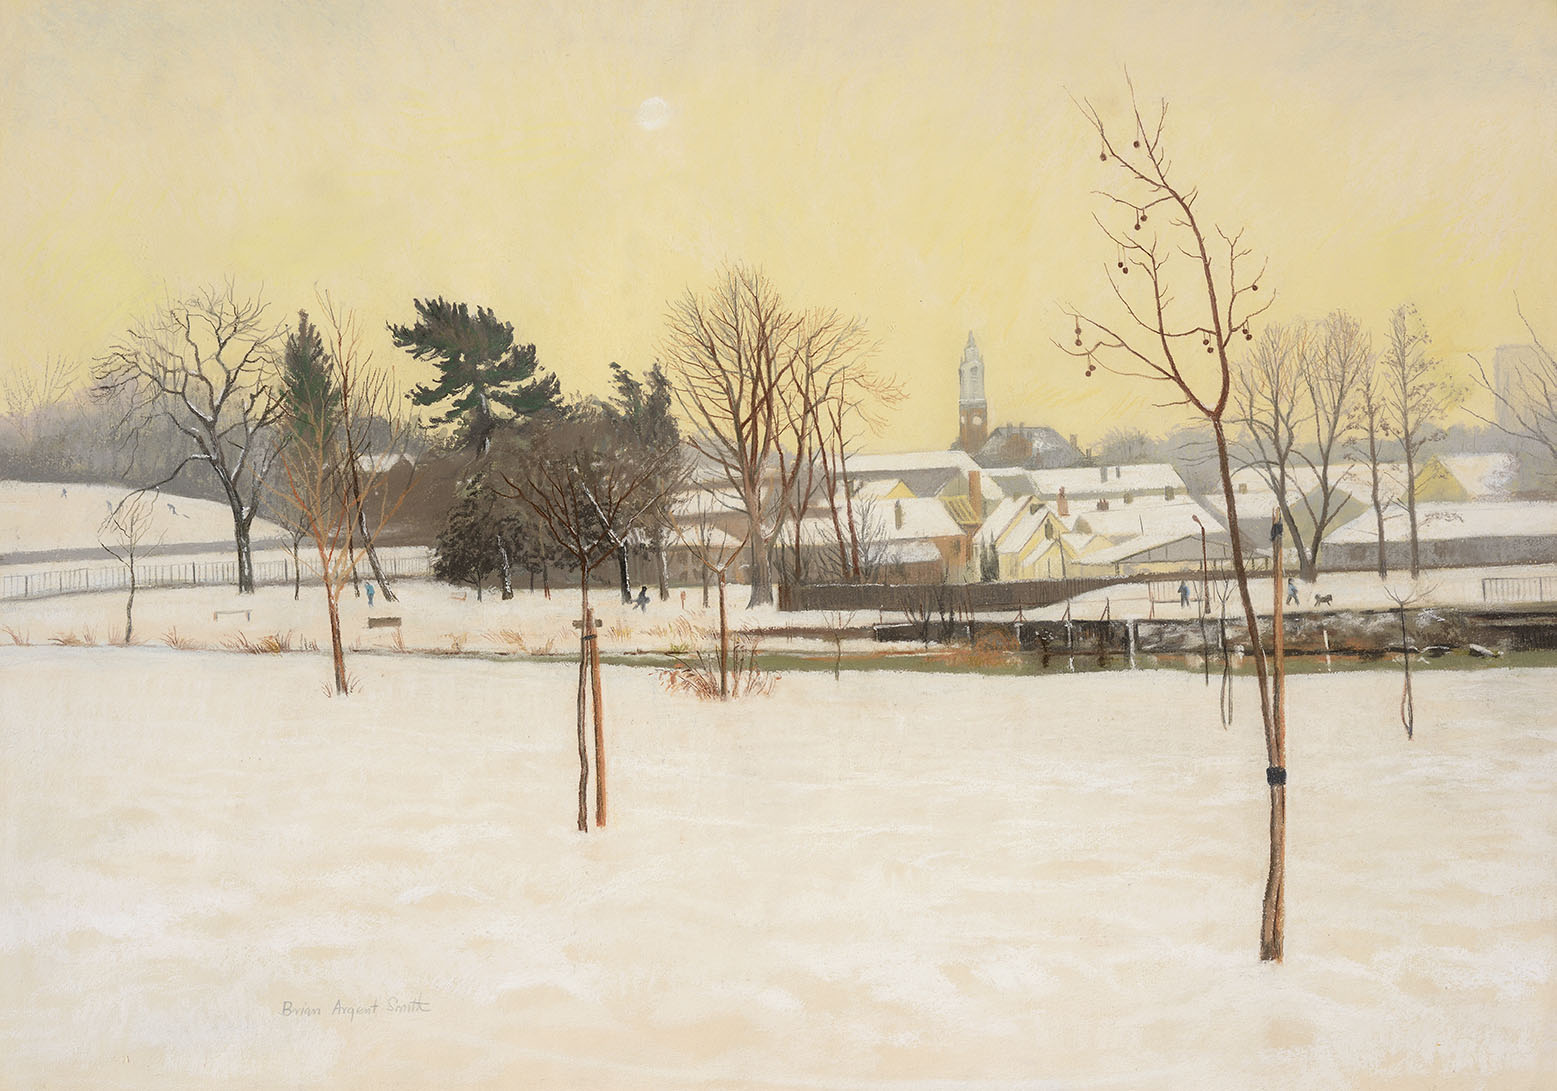 Brian Argent Smith (b.1937)    Snowfall, Colchester,  Watercolour on paper, 21 ½ x 30 ¾ in, Signed  [CAS 48] Acquired in 1980